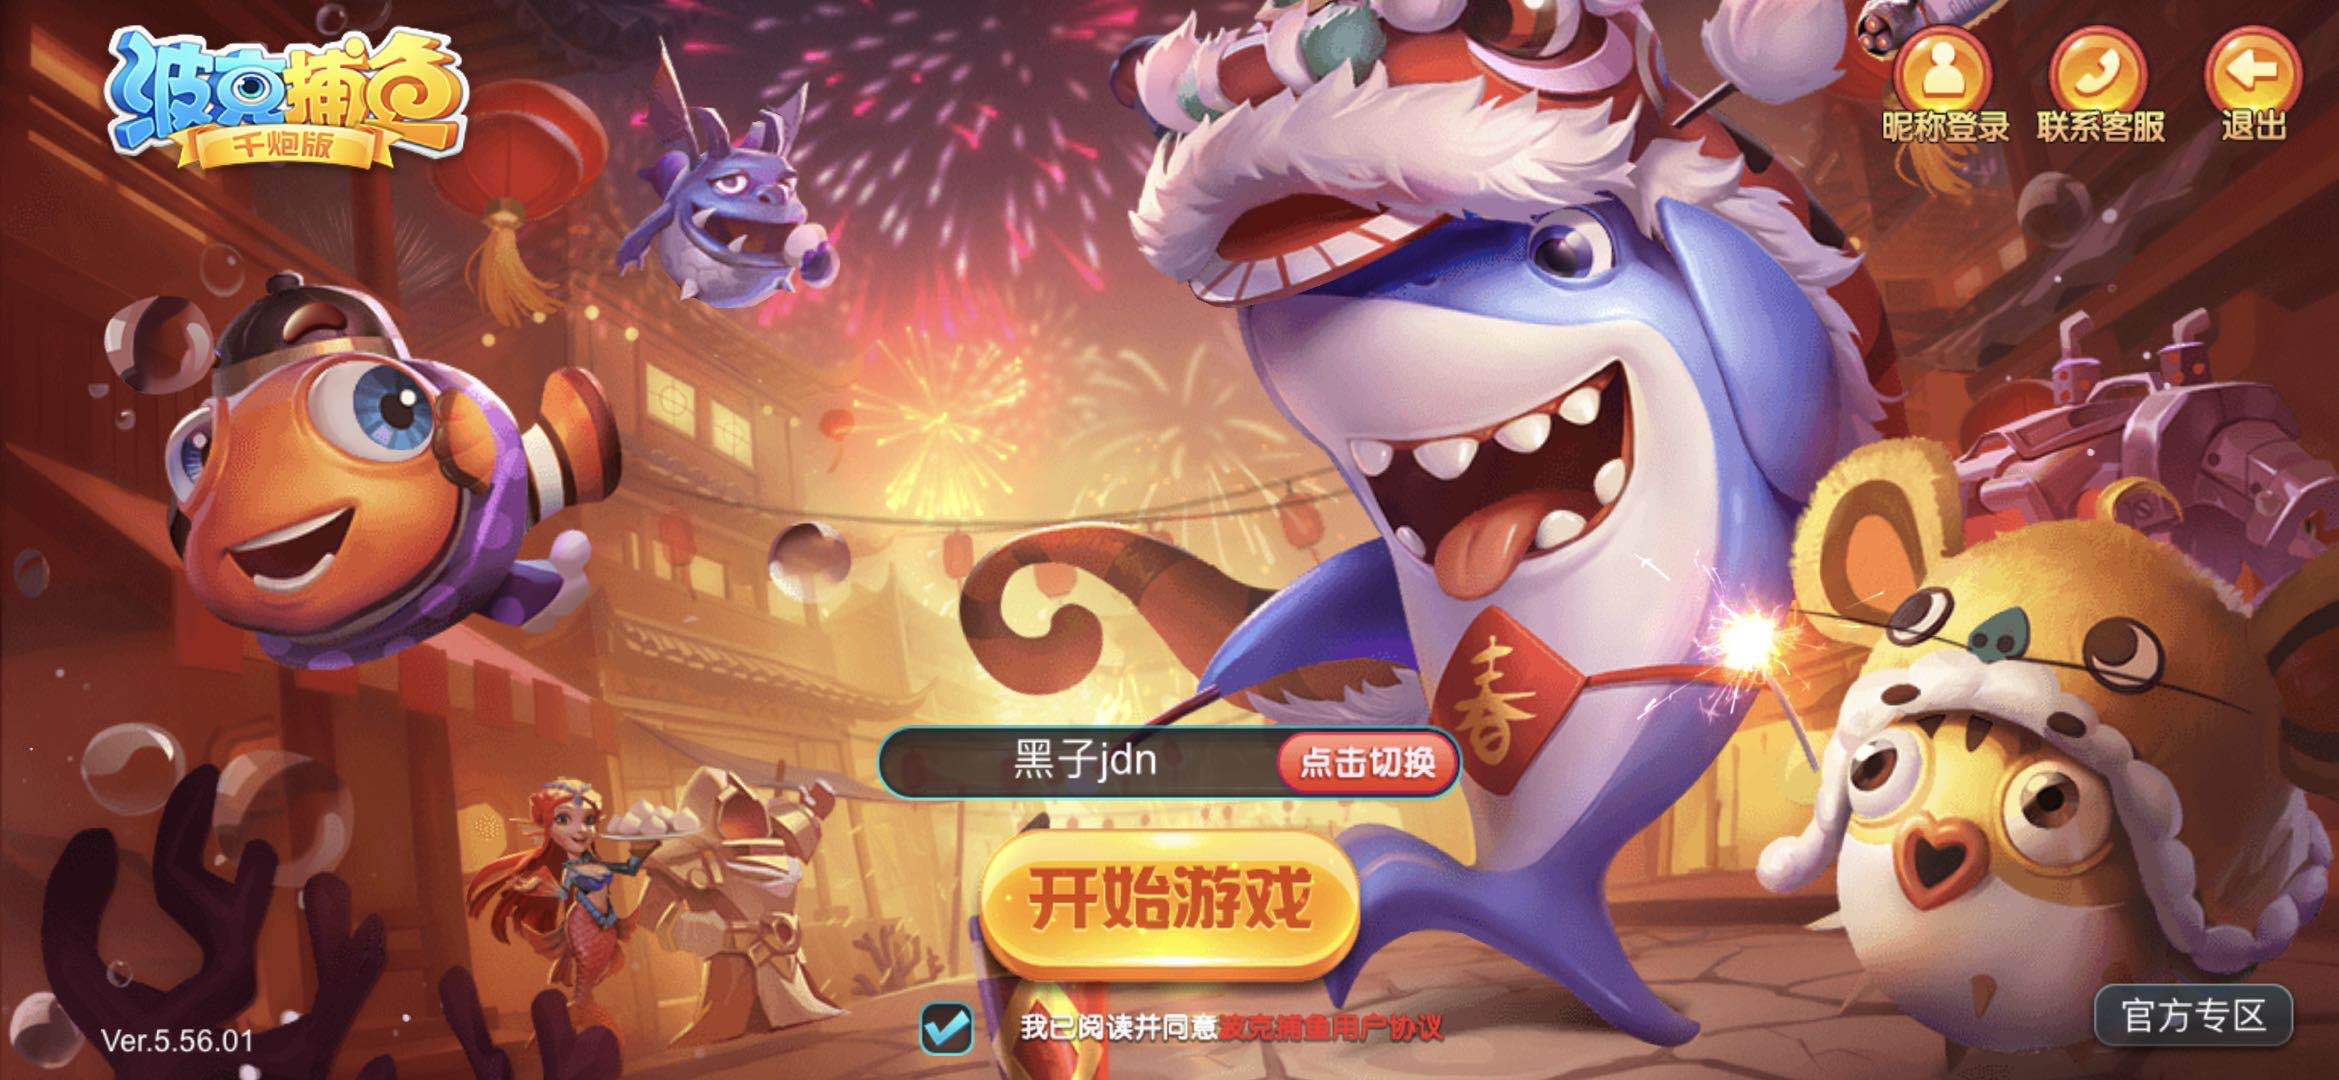 Pin by Fycent on Q版场景 in 2020 Game character design